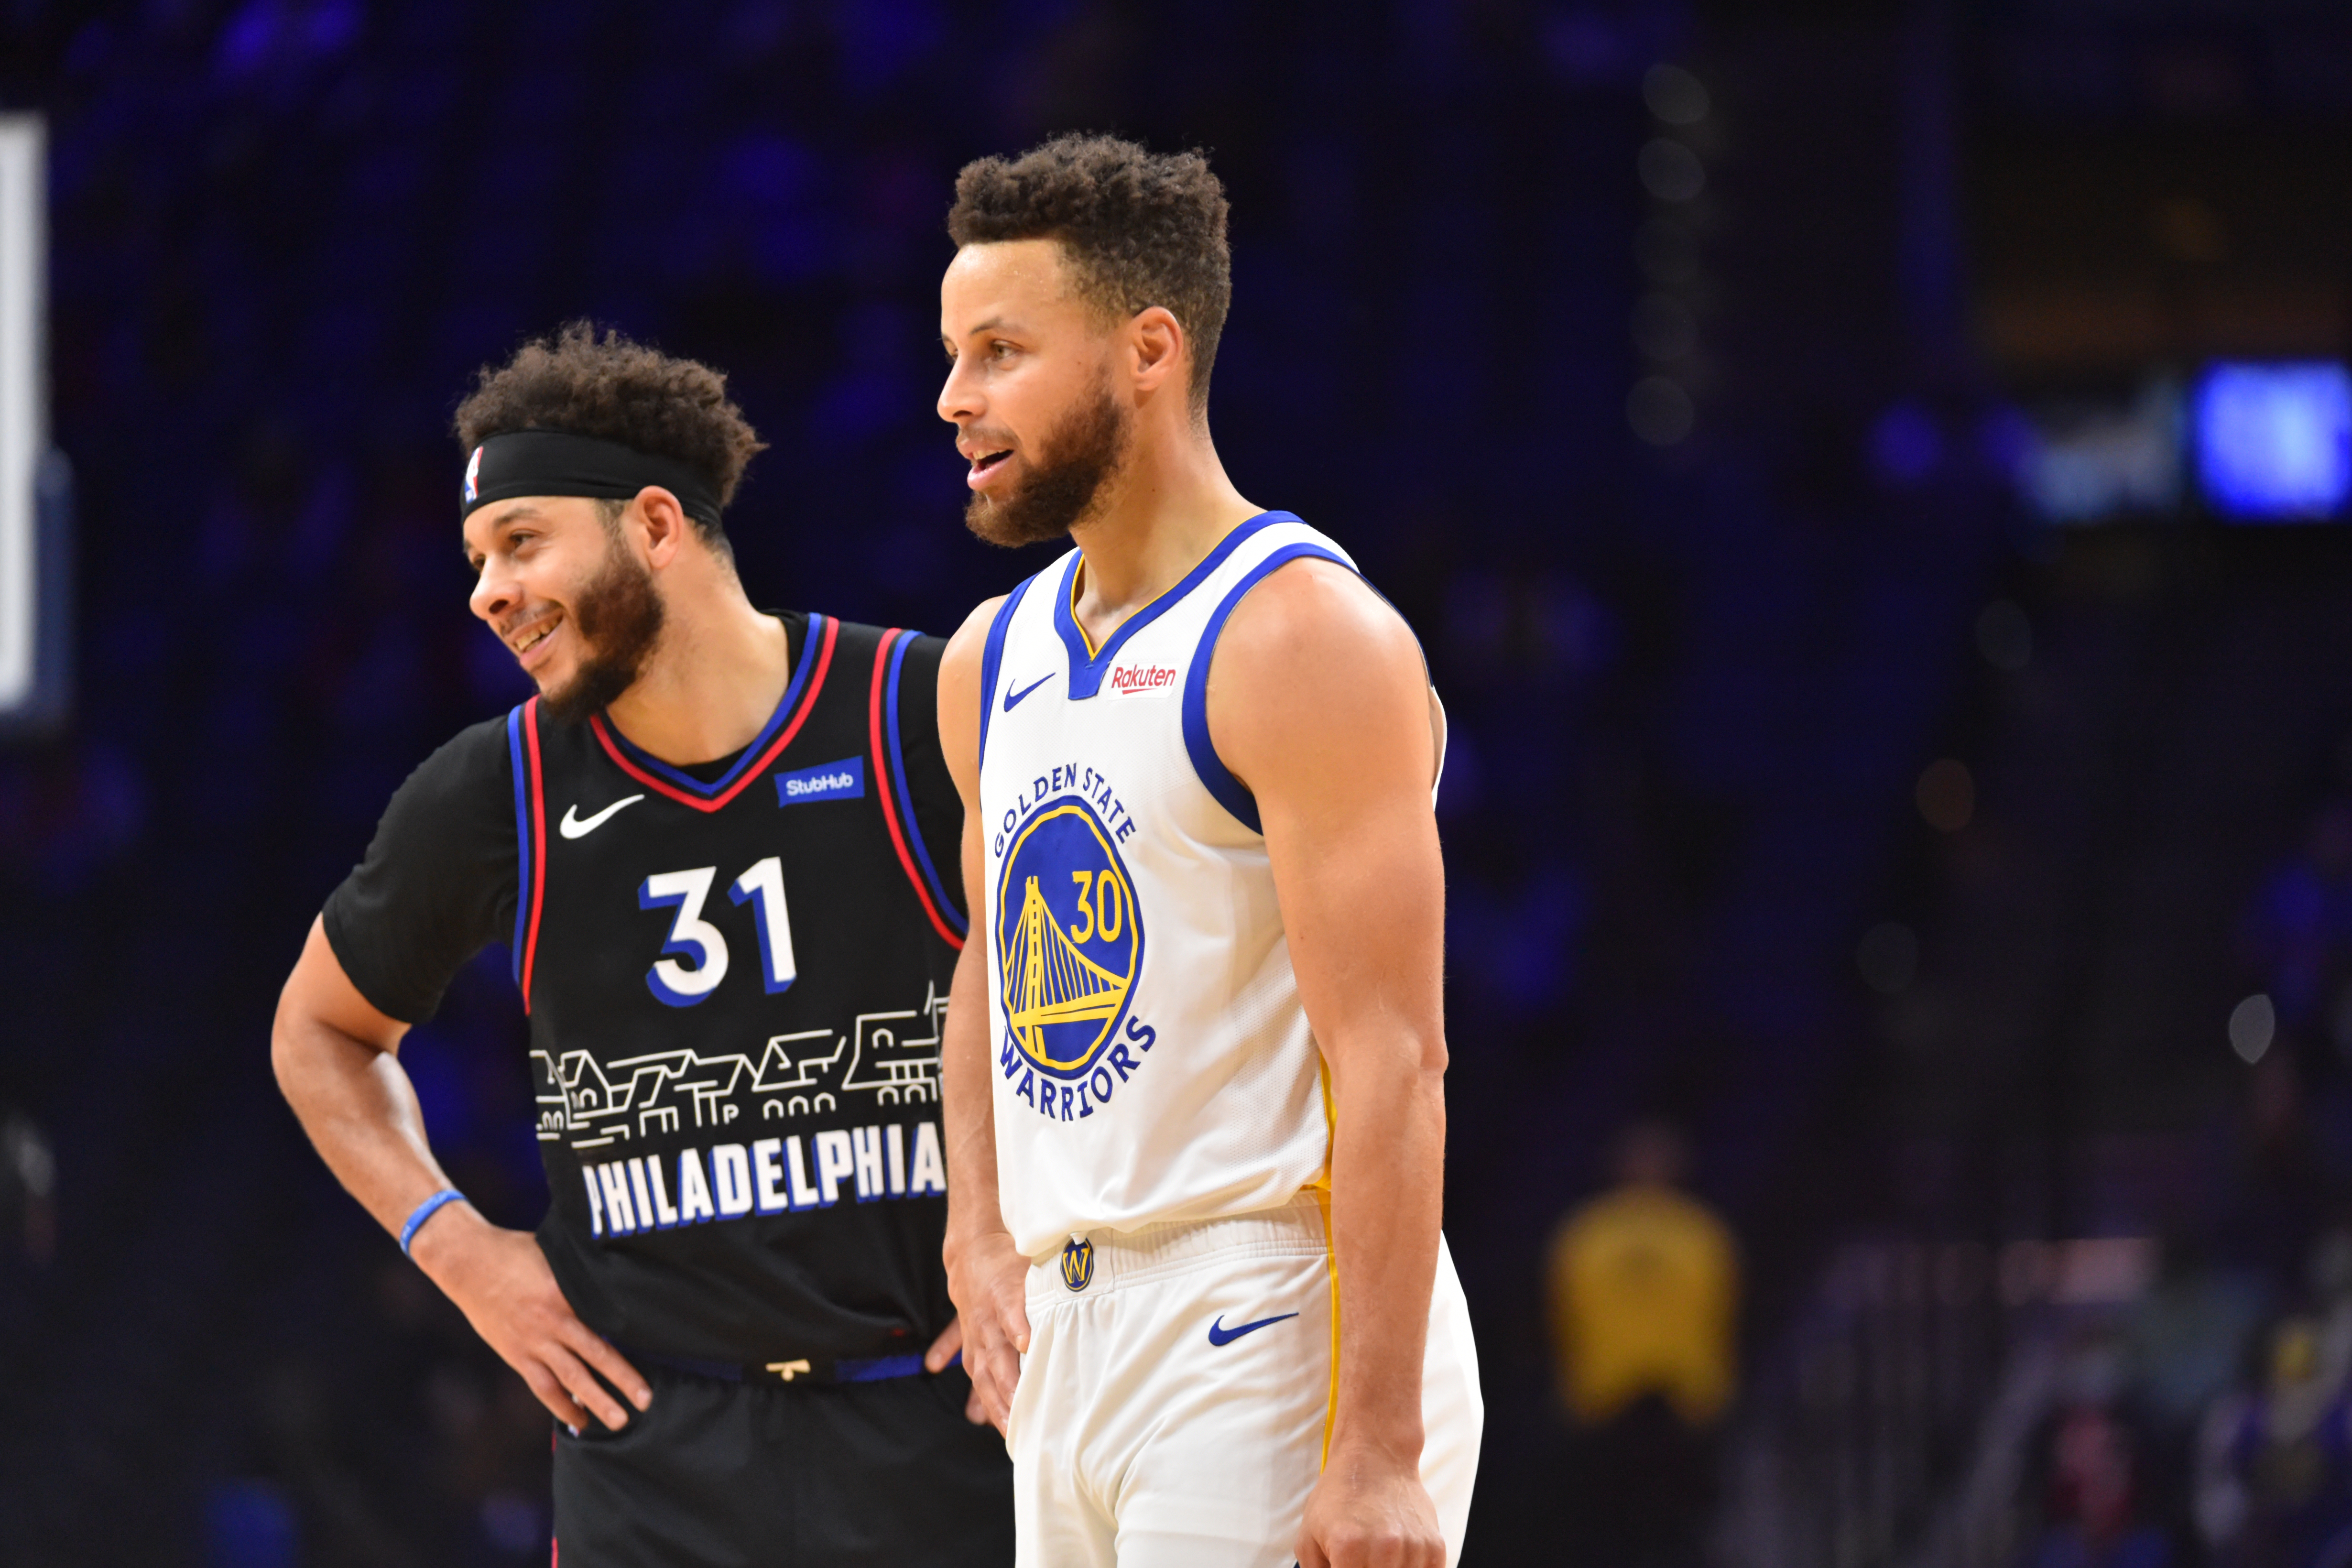 Seth Curry #31 of the Philadelphia 76ers and Stephen Curry #30 of the Golden State Warriors talk during a game on April 19, 2021 at Wells Fargo Center in Philadelphia, Pennsylvania.